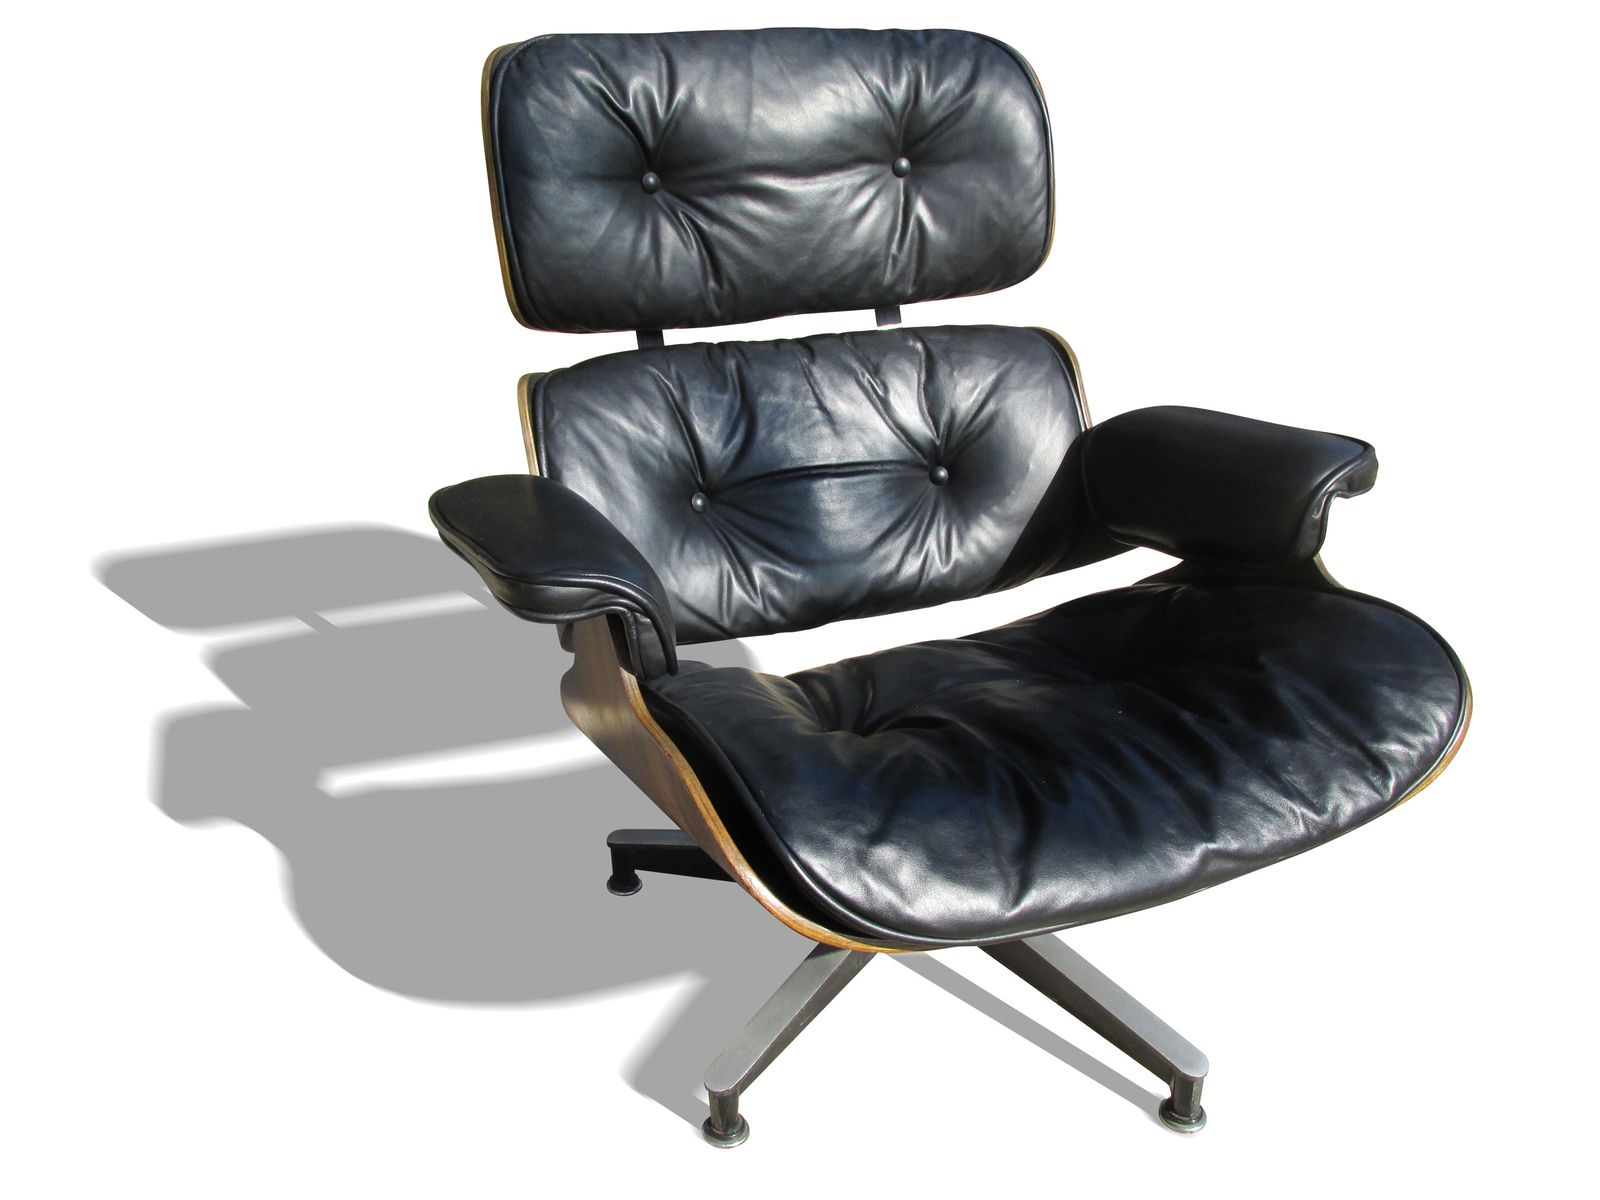 670 671 Lounge Chair and Ottoman by Charles and Ray Eames for Herman Miller